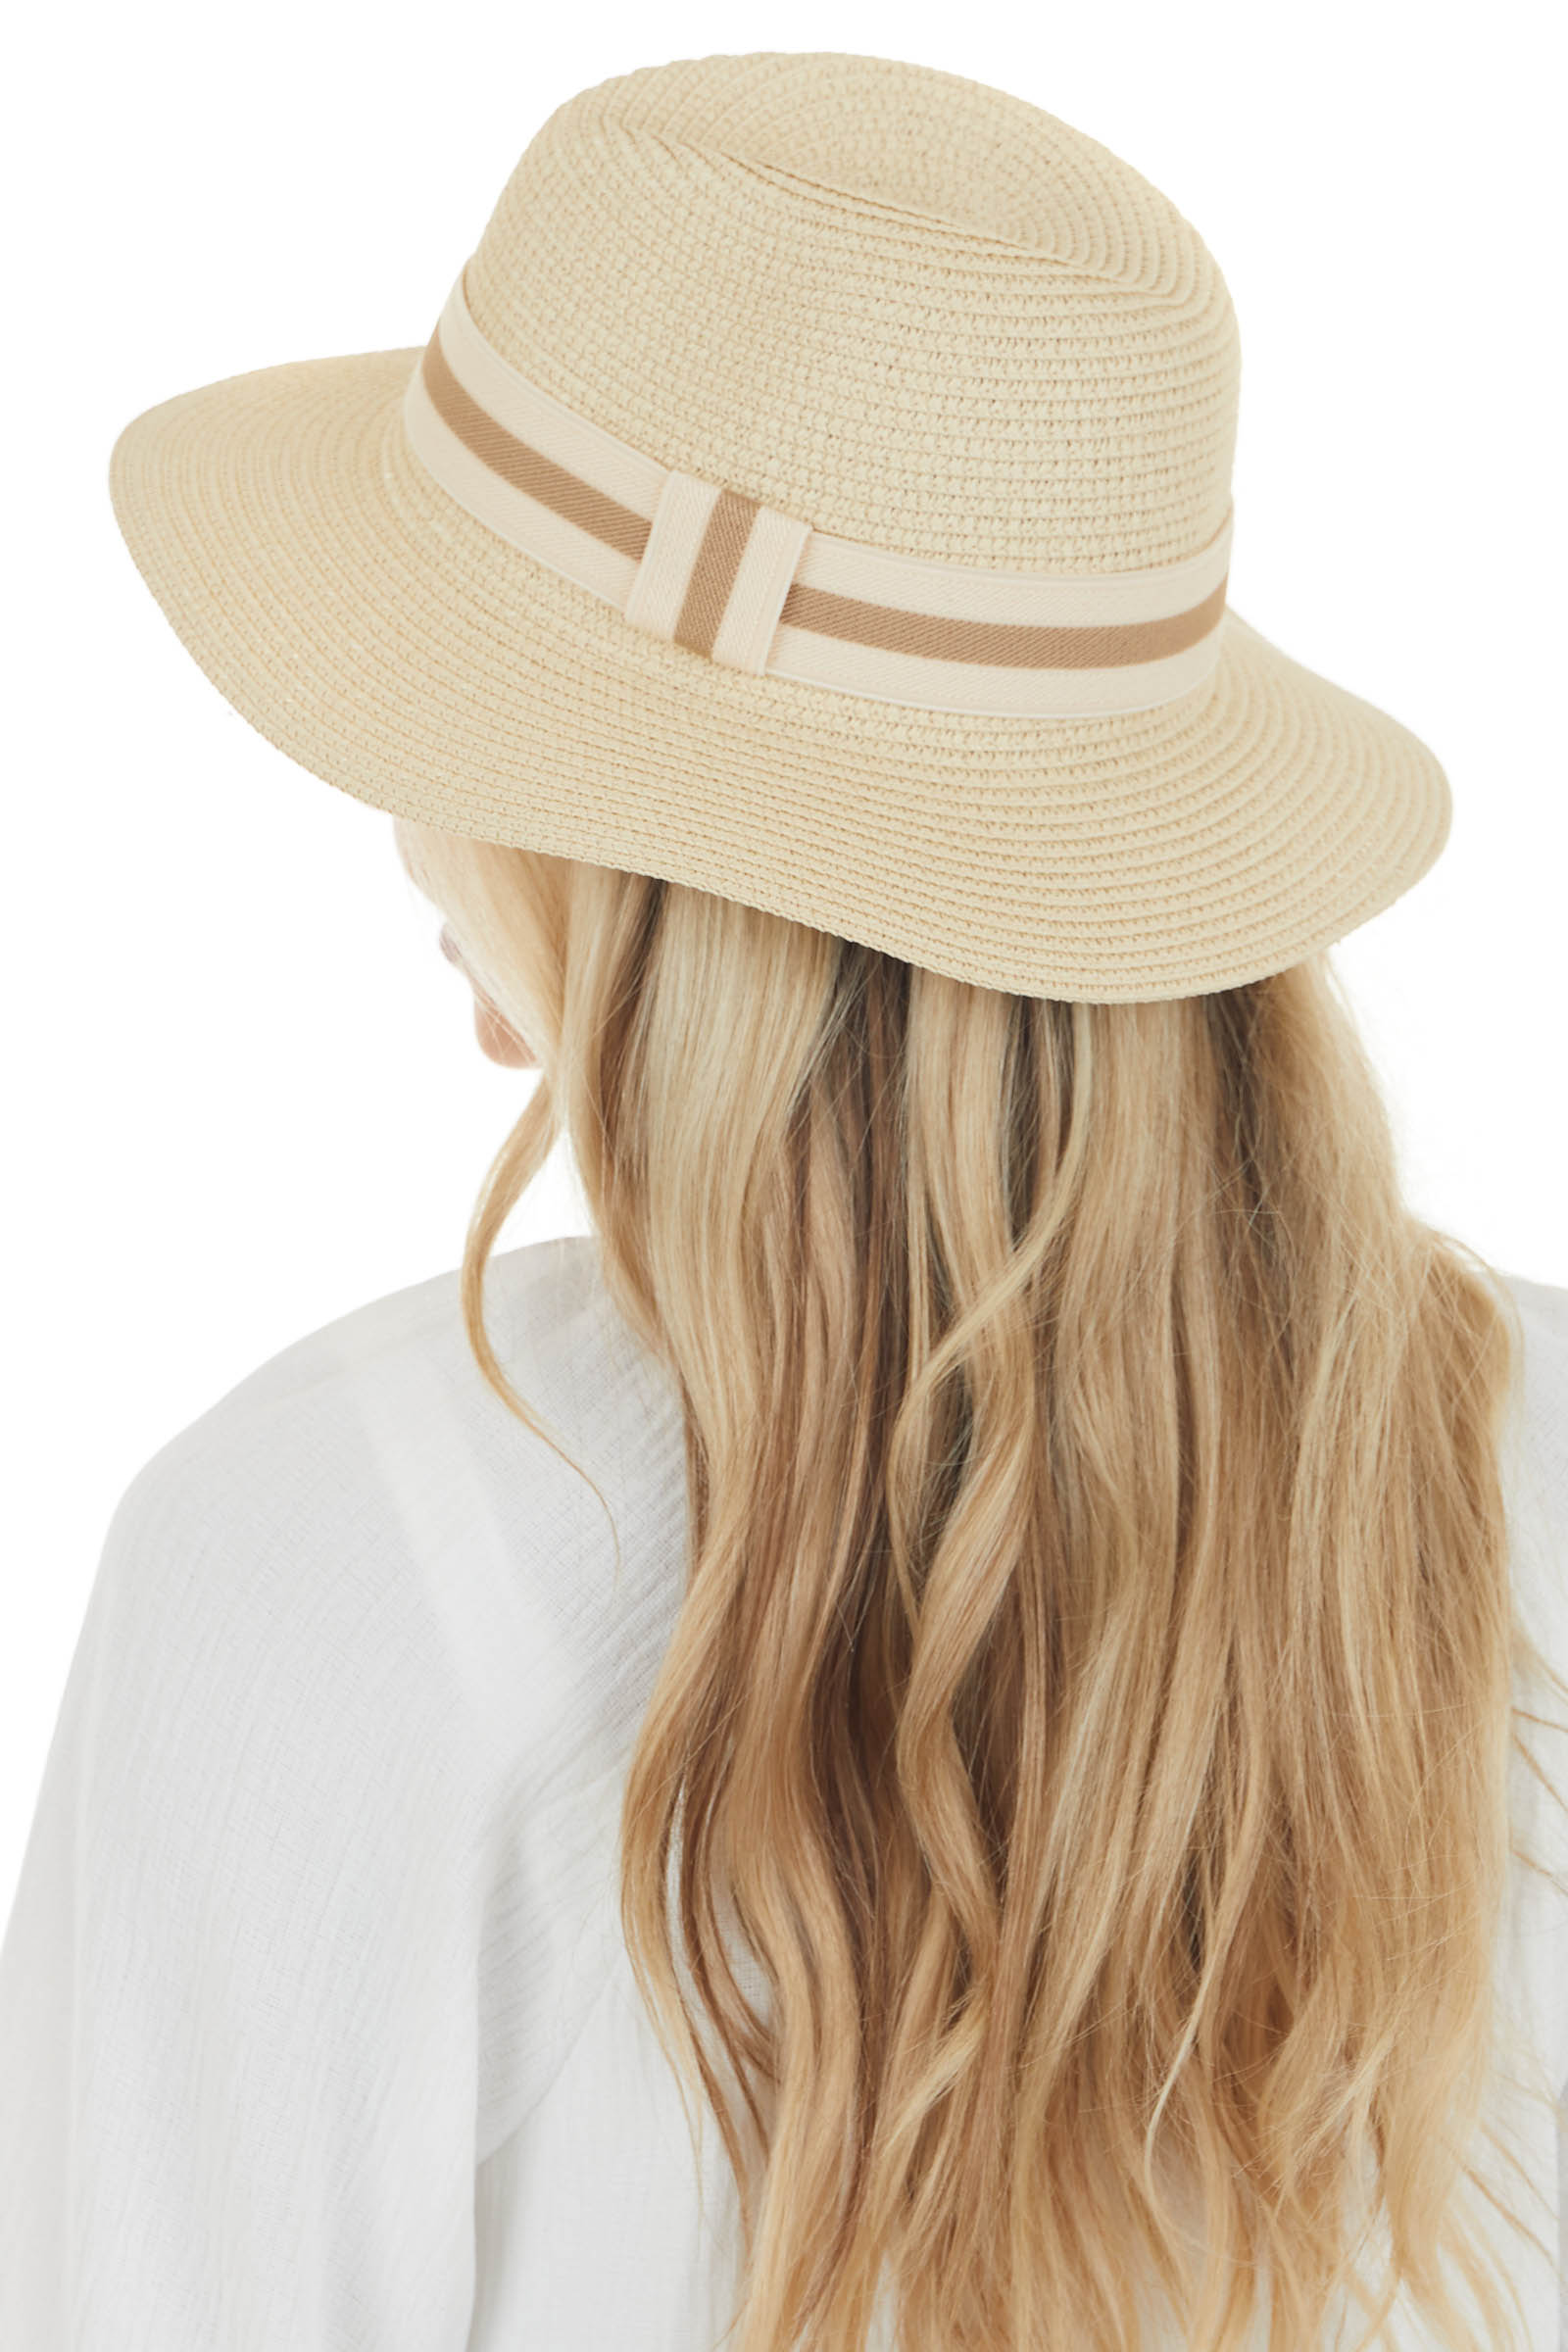 Beige Straw Sun Hat with Striped Band Detail